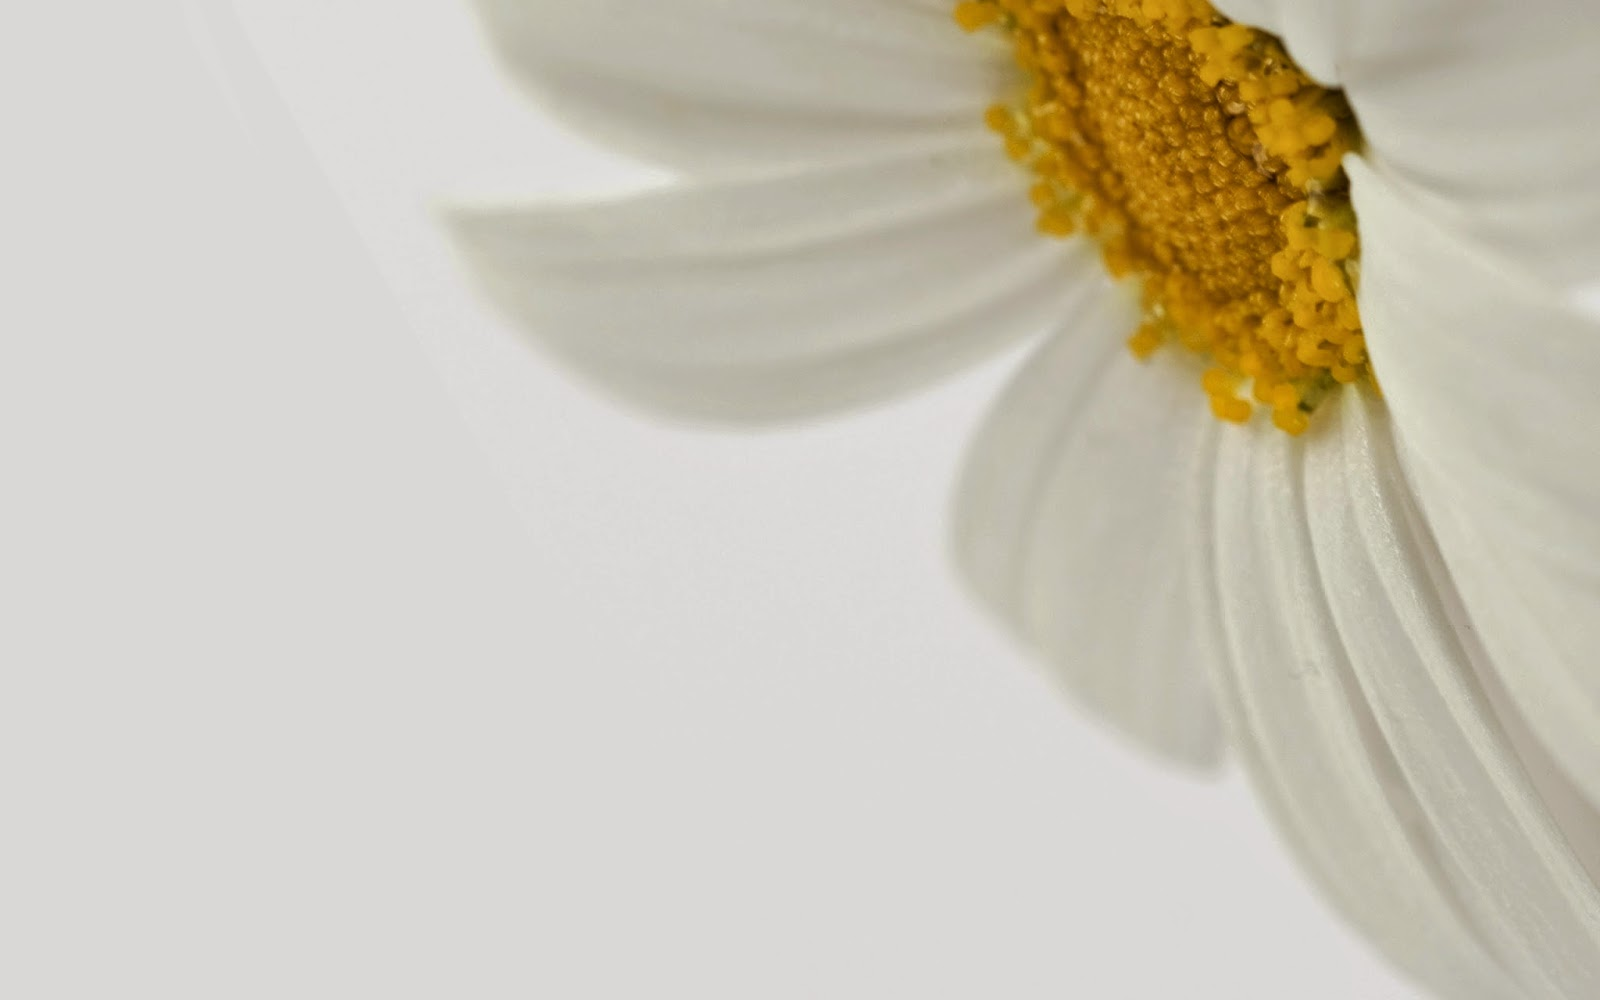 Daisy-flower-wallpaper-white-BG-for-Desktop-PC-free-download.jpg